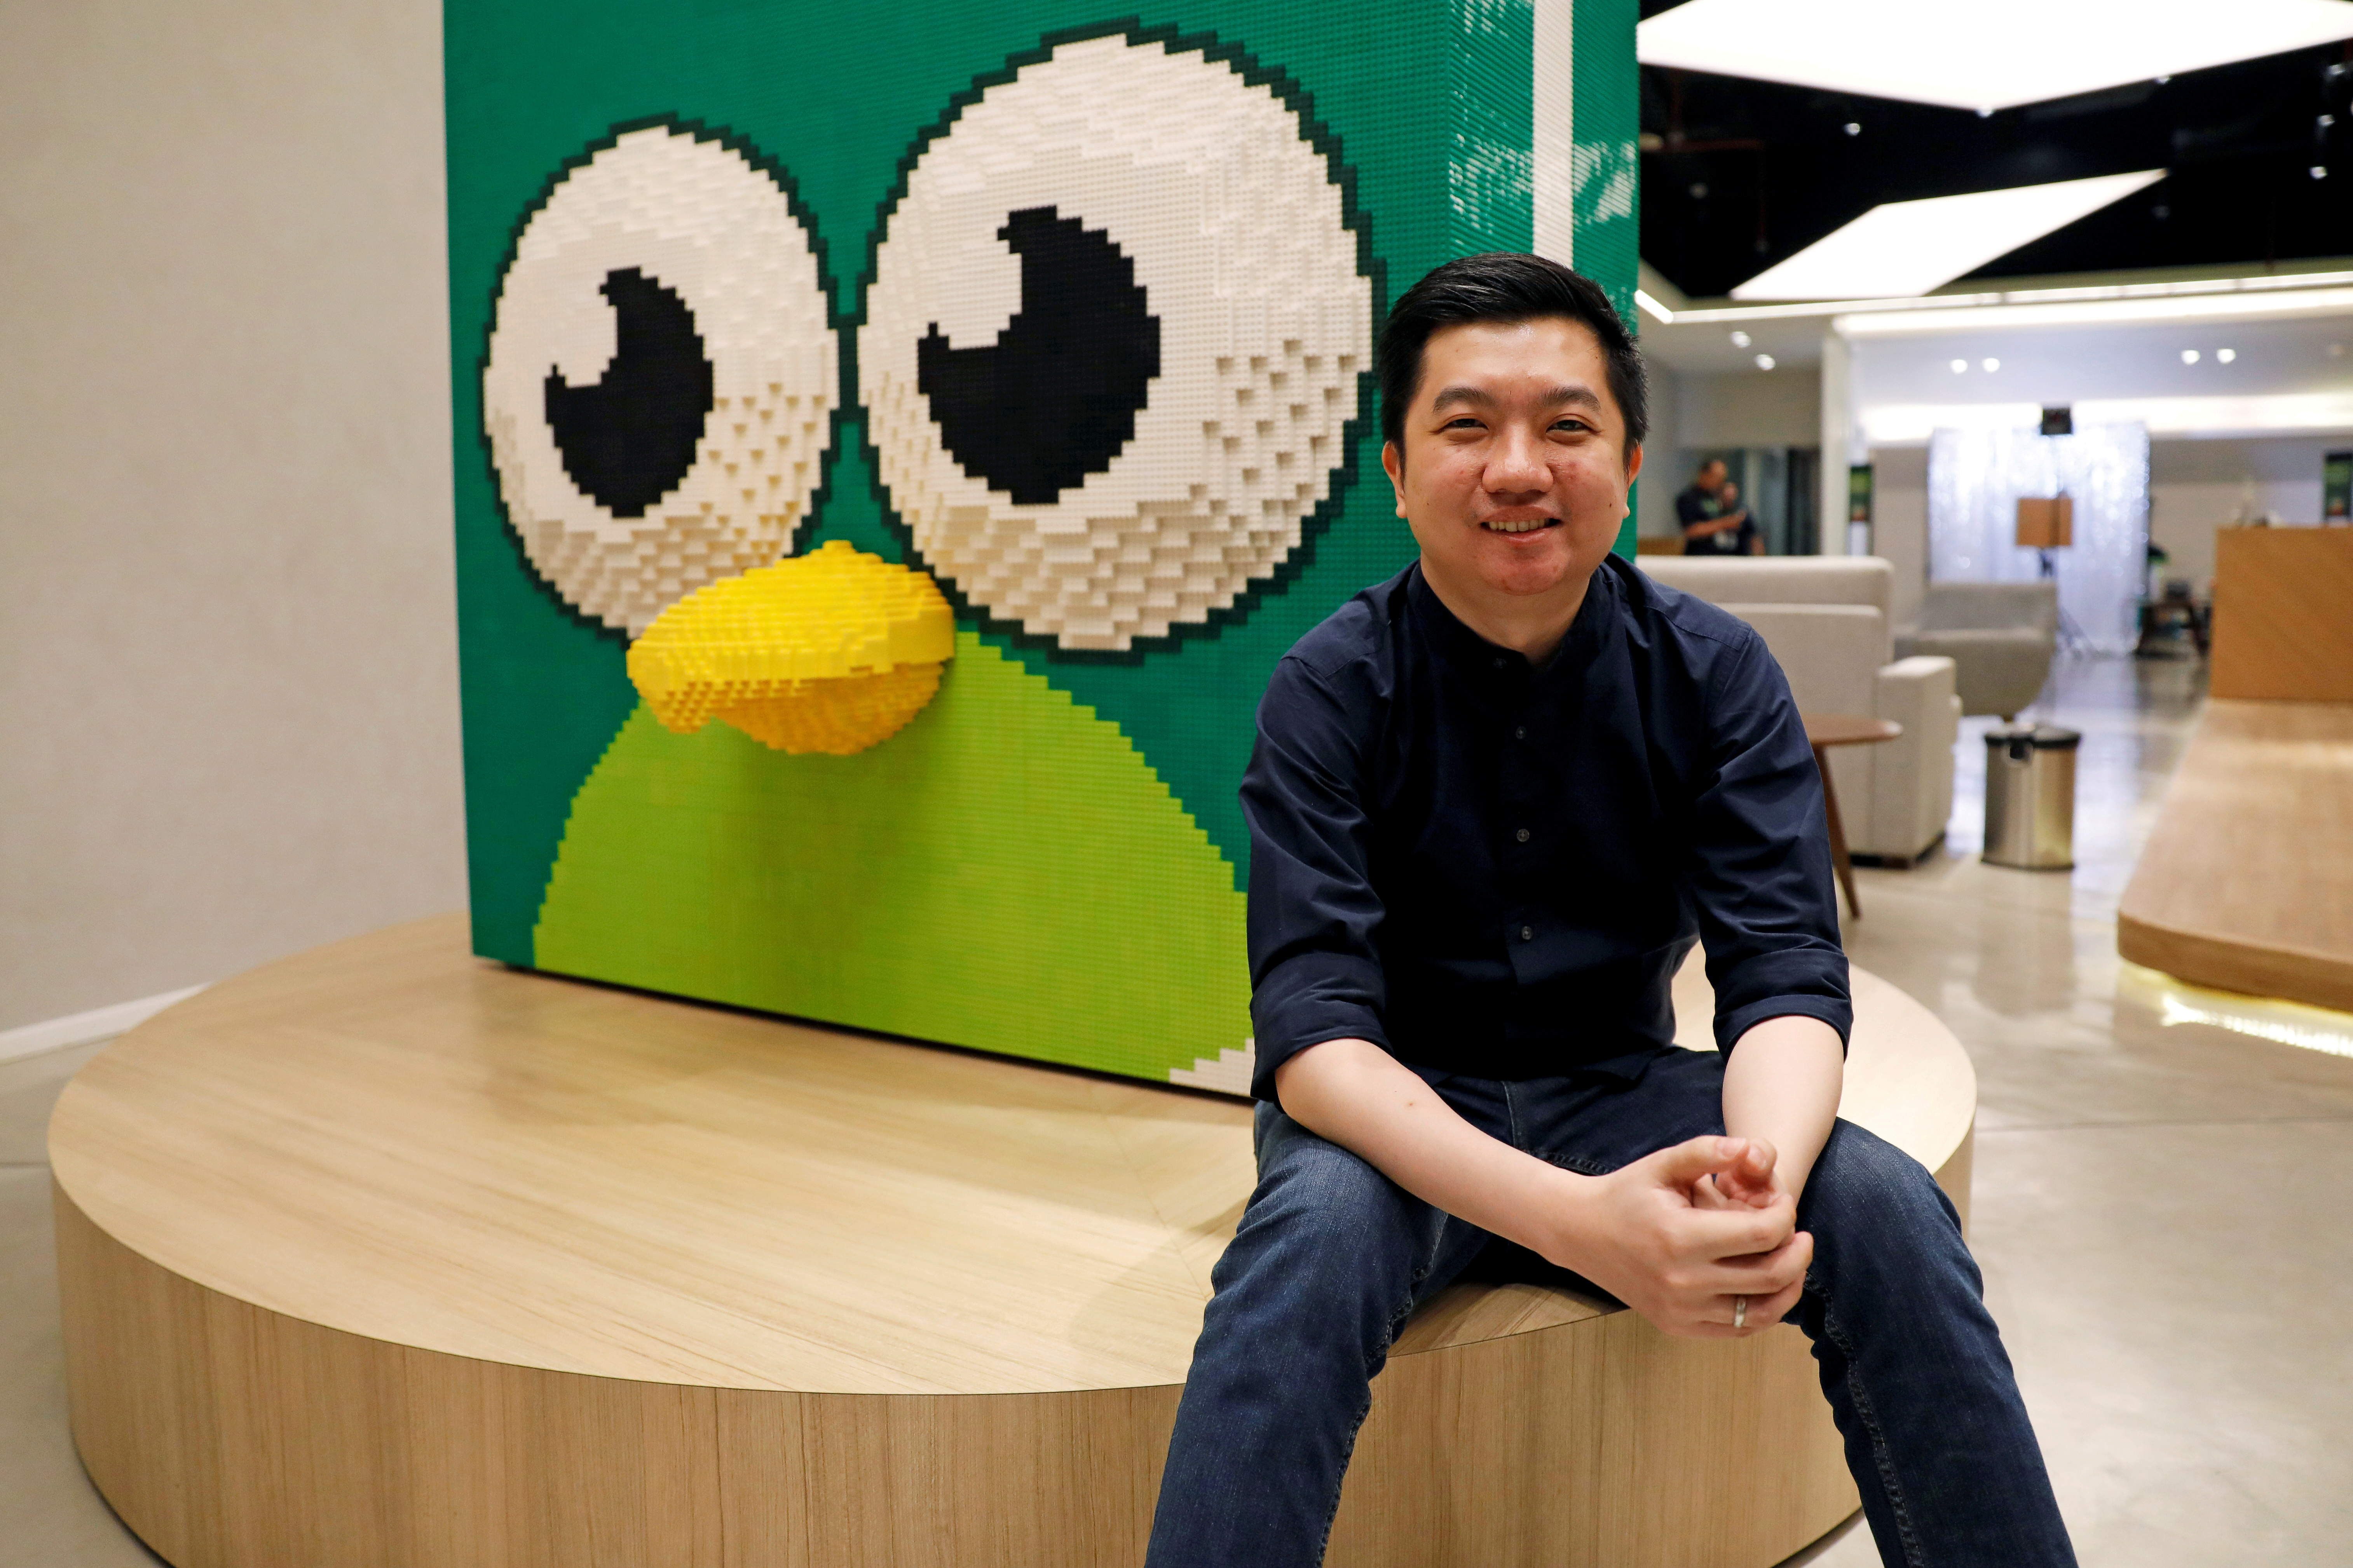 Indonesian e-commerce firm Tokopedia founder and CEO, William Tanuwijaya, poses for a photograph at Tokopedia headquarters in Jakarta, Indonesia, July 25, 2019. REUTERS/Willy Kurniawan